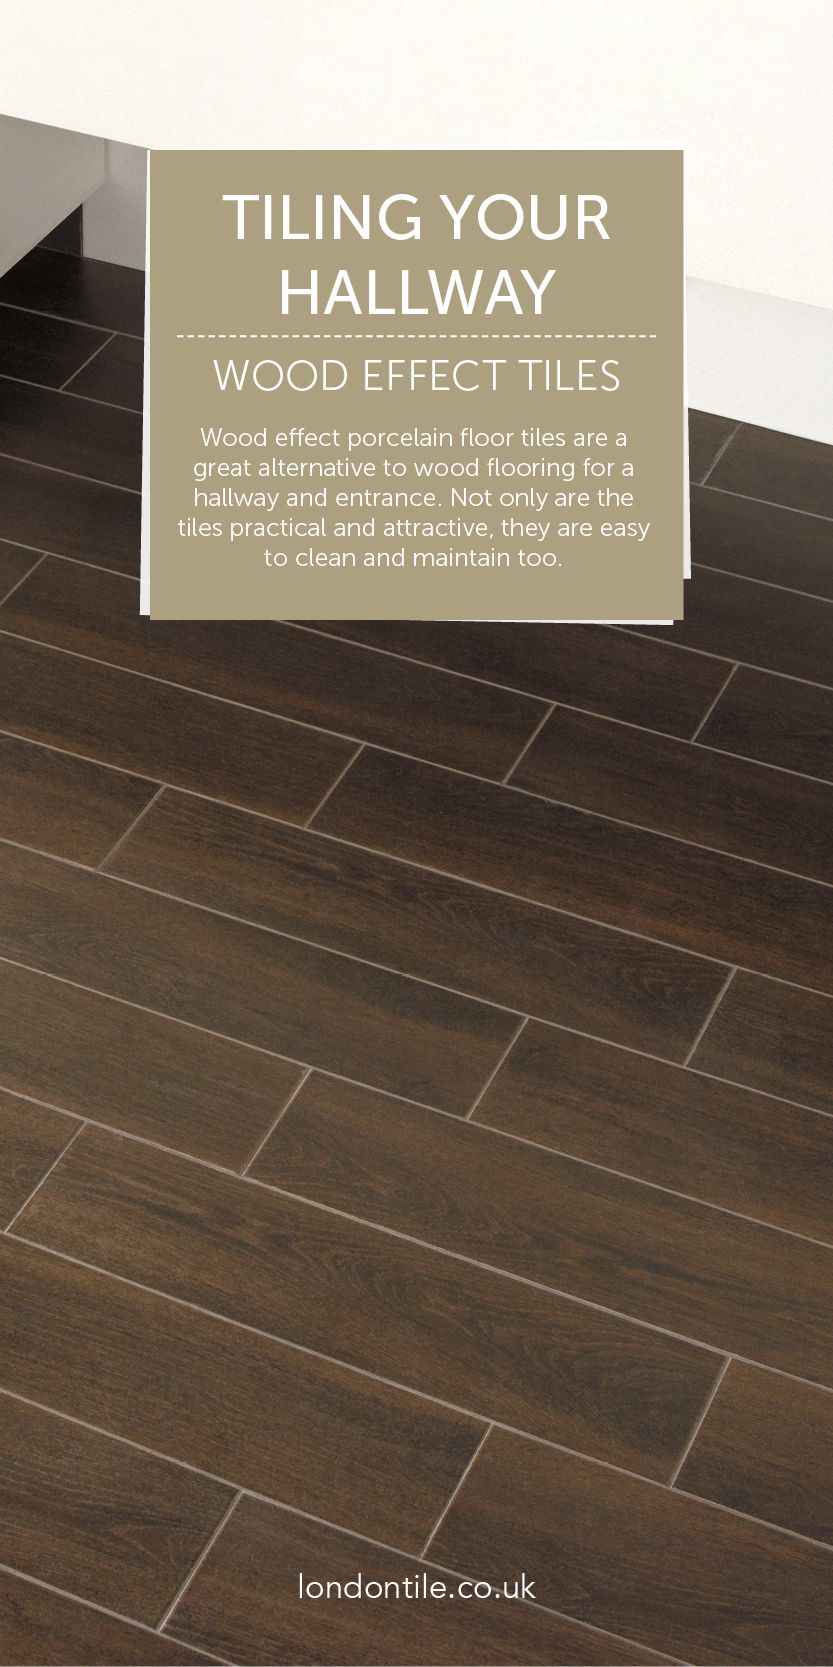 Wood effect porcelain floor tiles are easy to clean and maintain